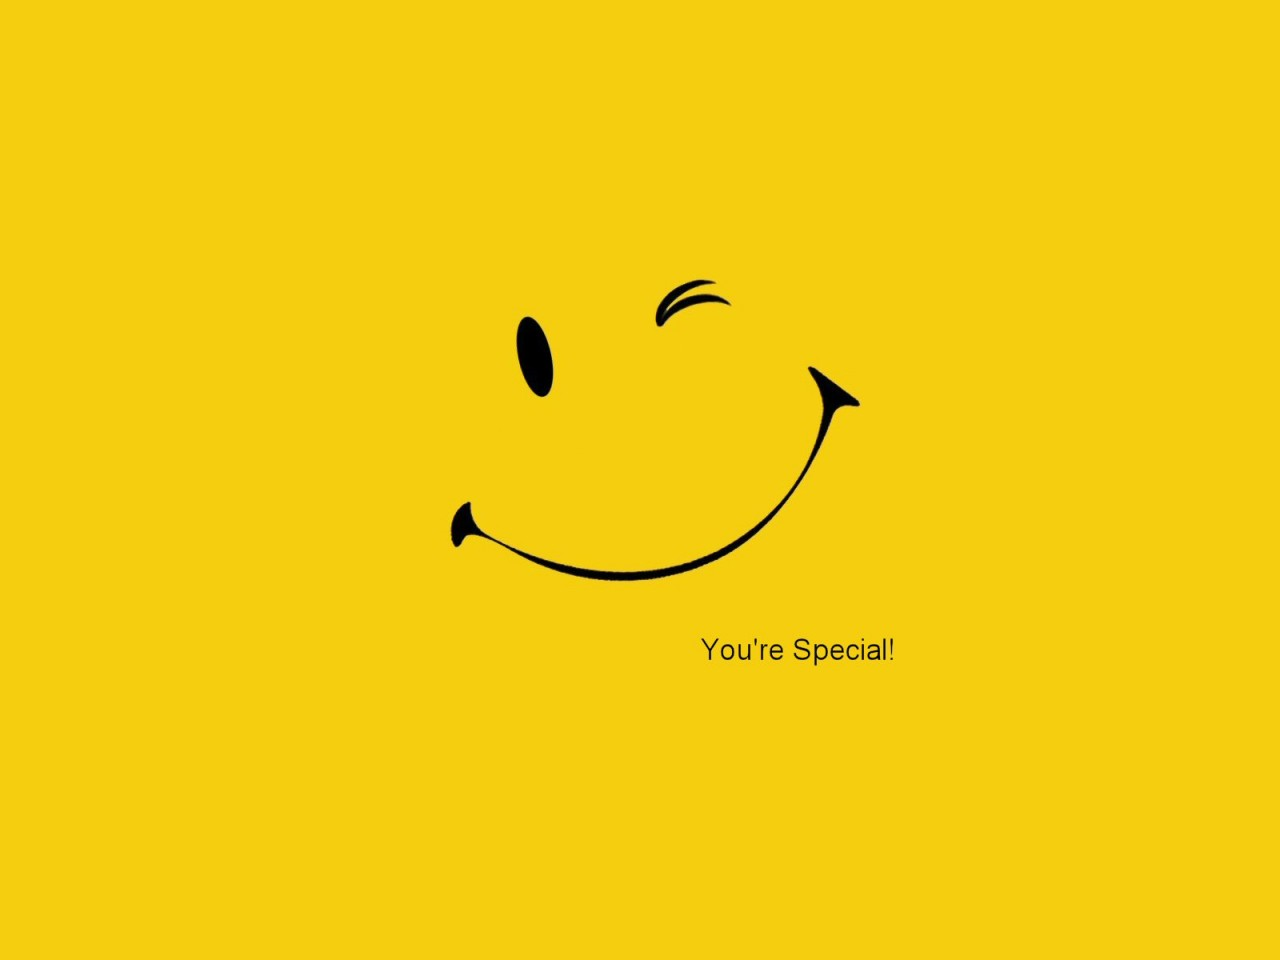 Simple Smiley Face Wallpaper Android Wallpaper WallpaperLepi 1280x960